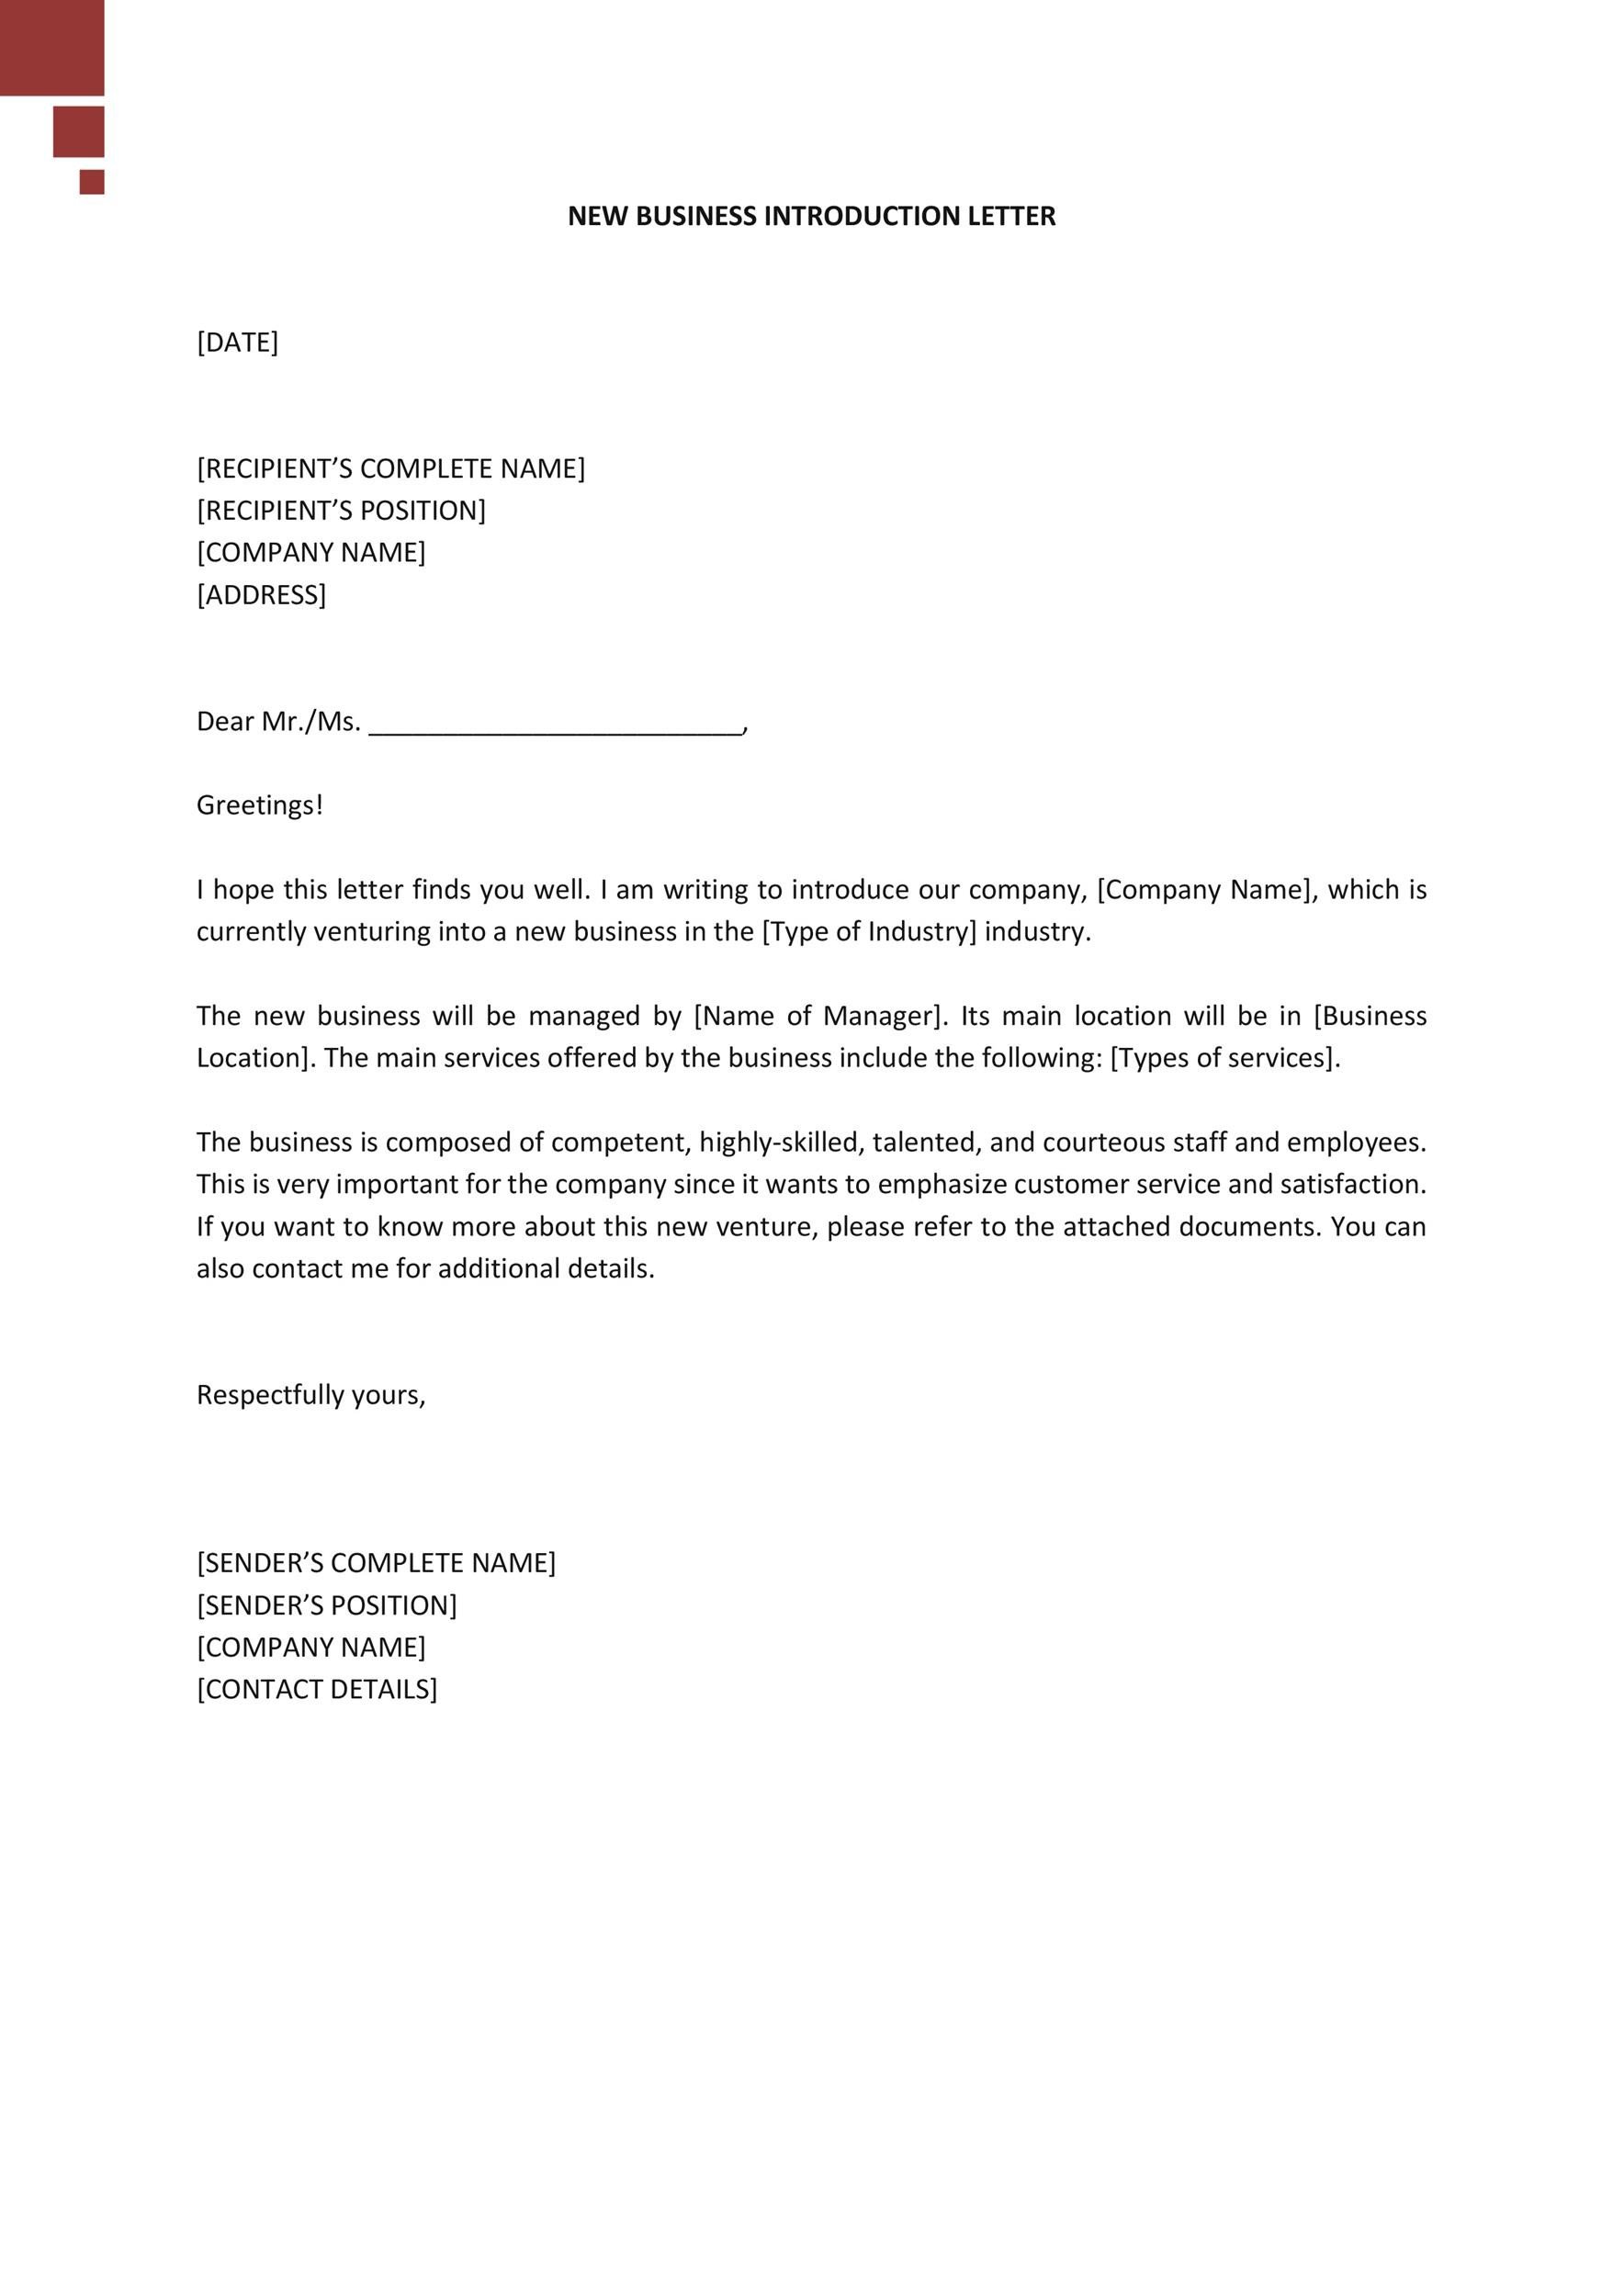 Free business introduction letter 22